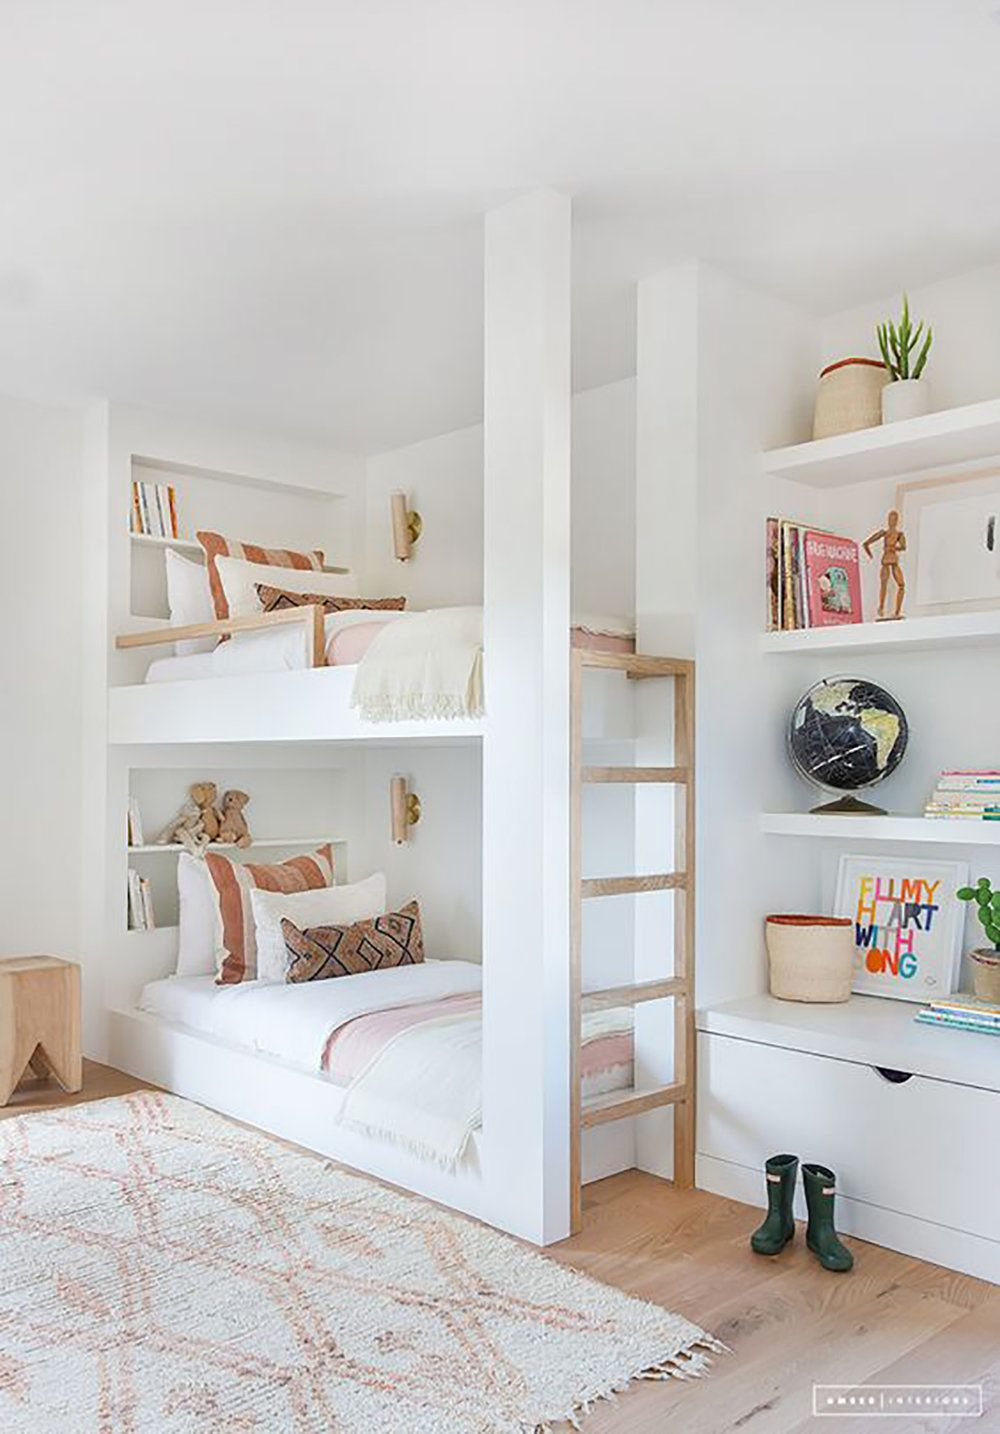 The Most Pinteresting Things This Month May Bunk Beds Built In